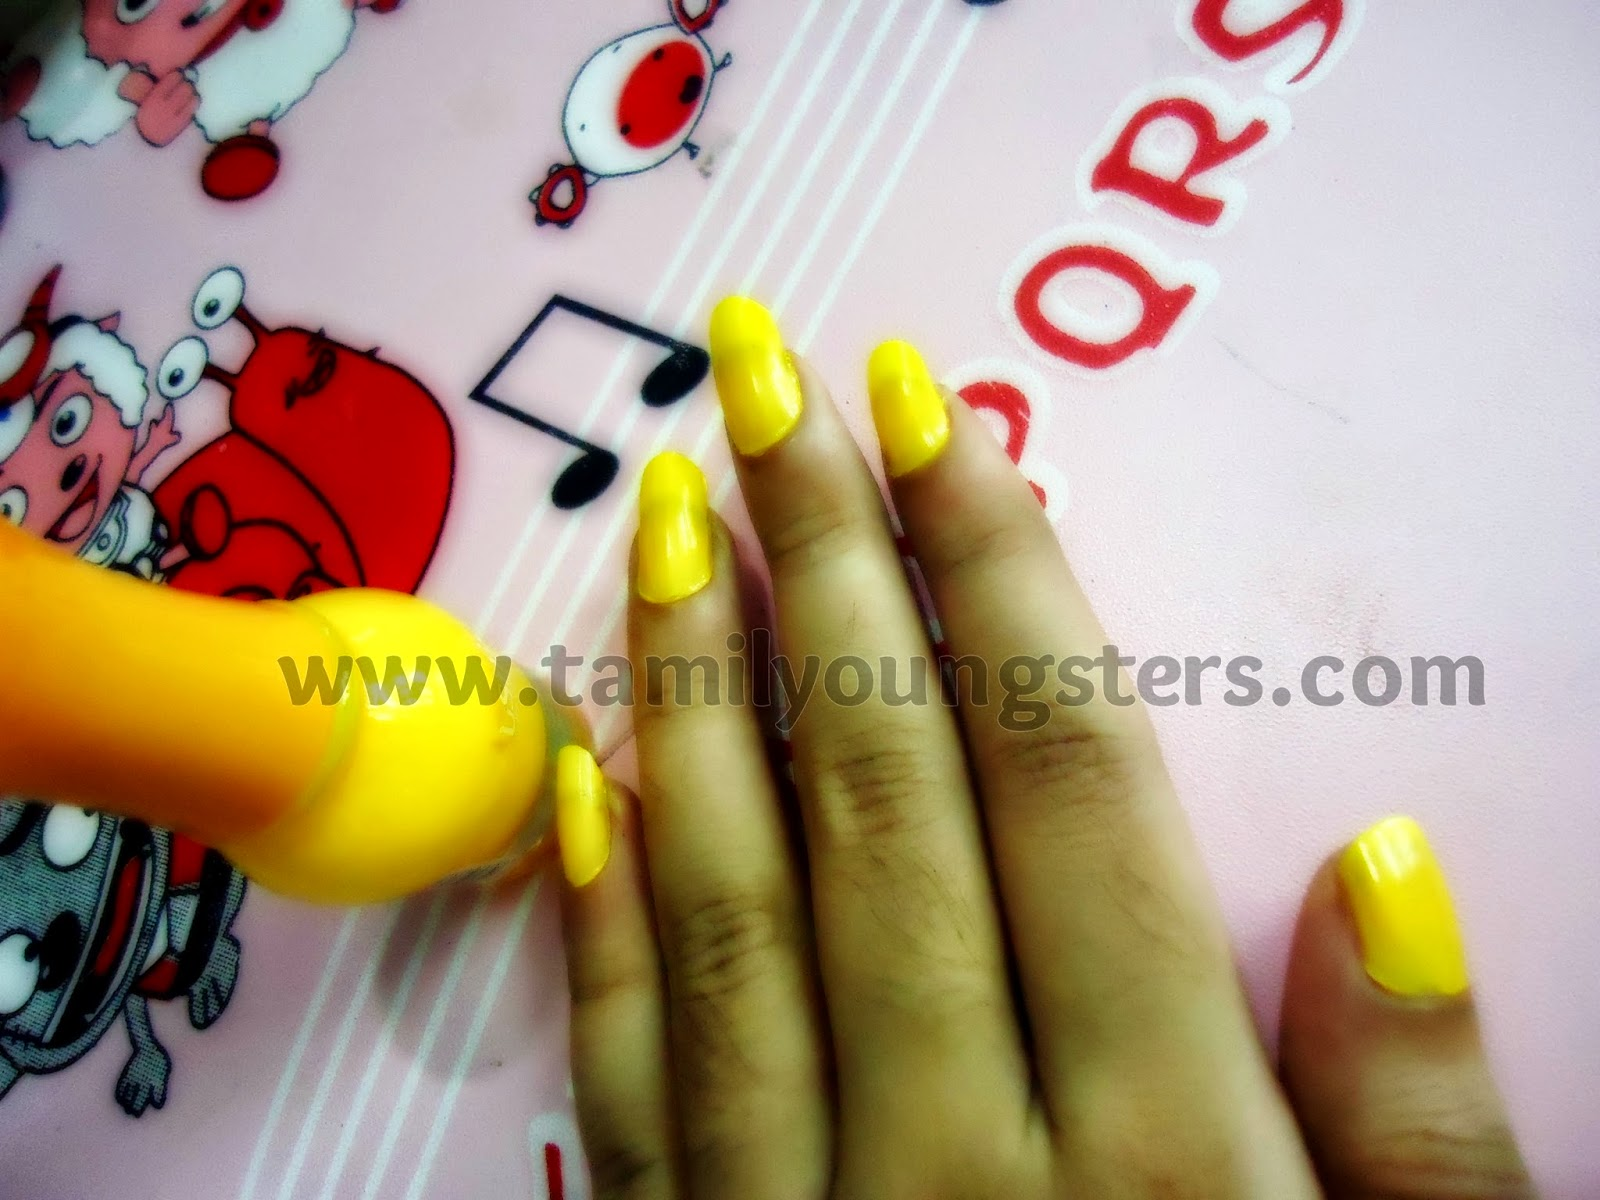 How To Make Easy Nail Art In Home Trail